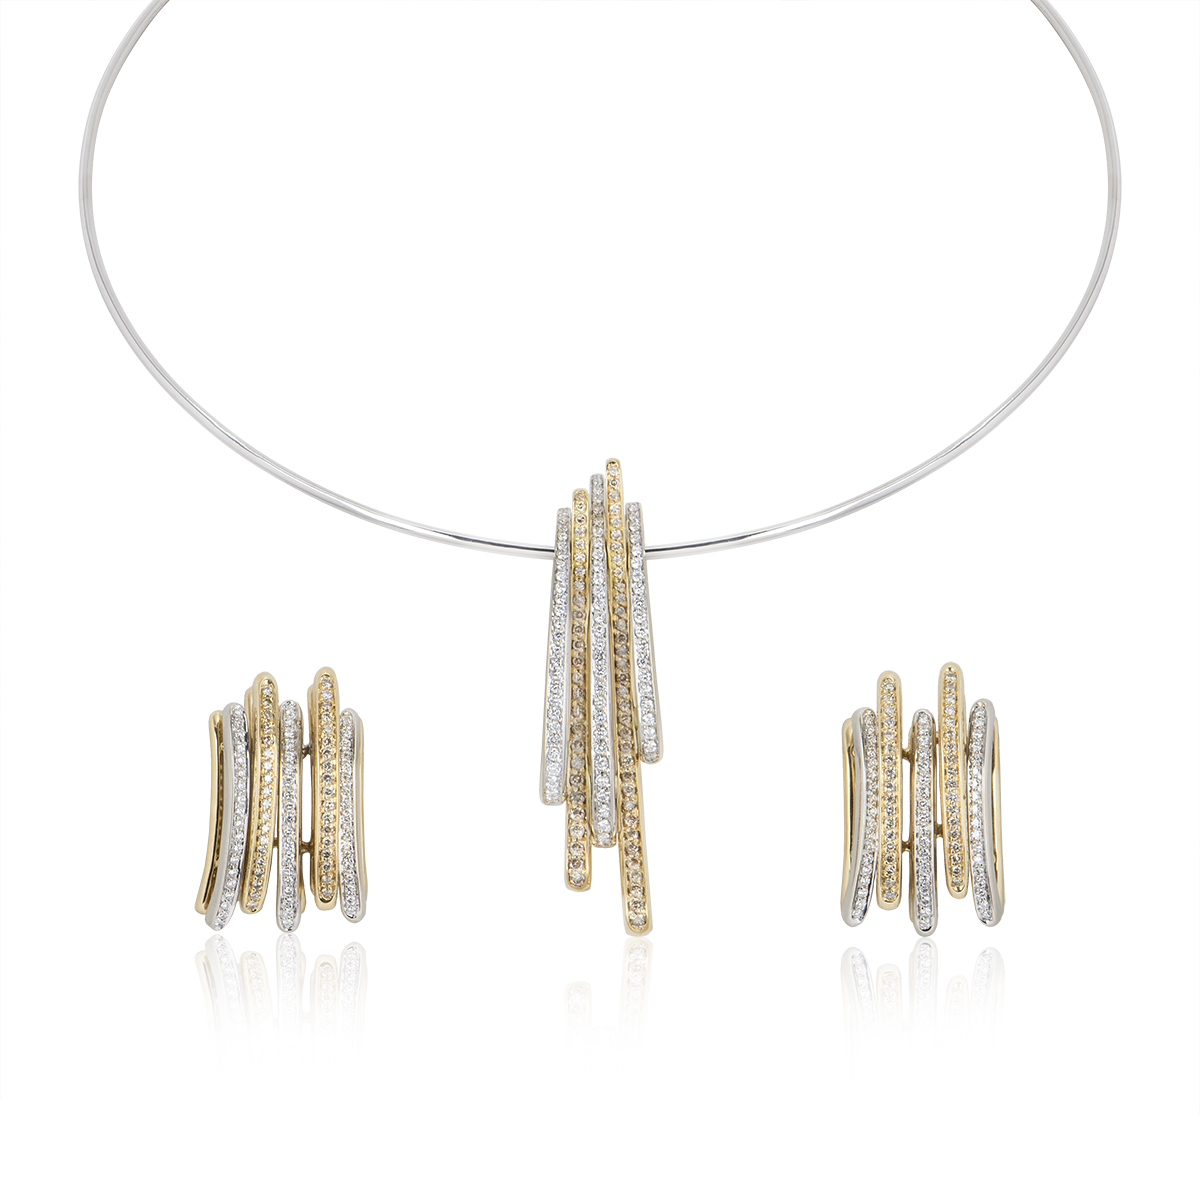 18k Two Colour Gold Diamond Necklace and Earring Suite